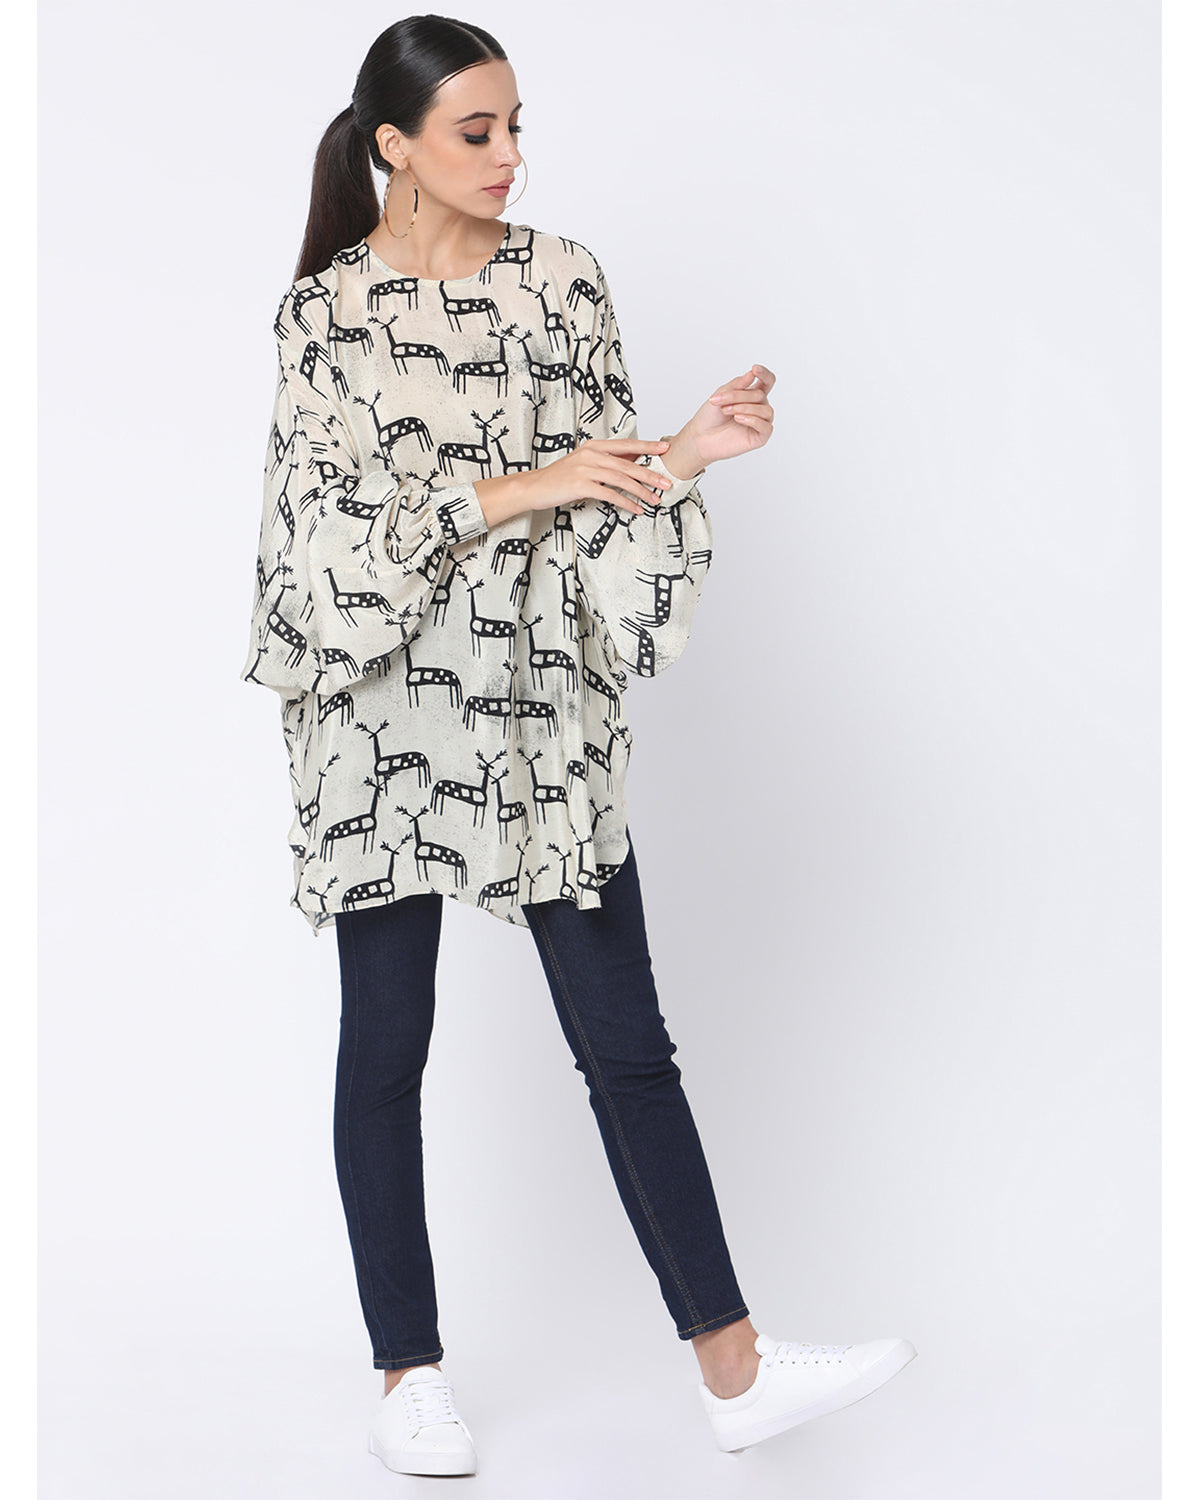 Deer In The Dark Circular Top